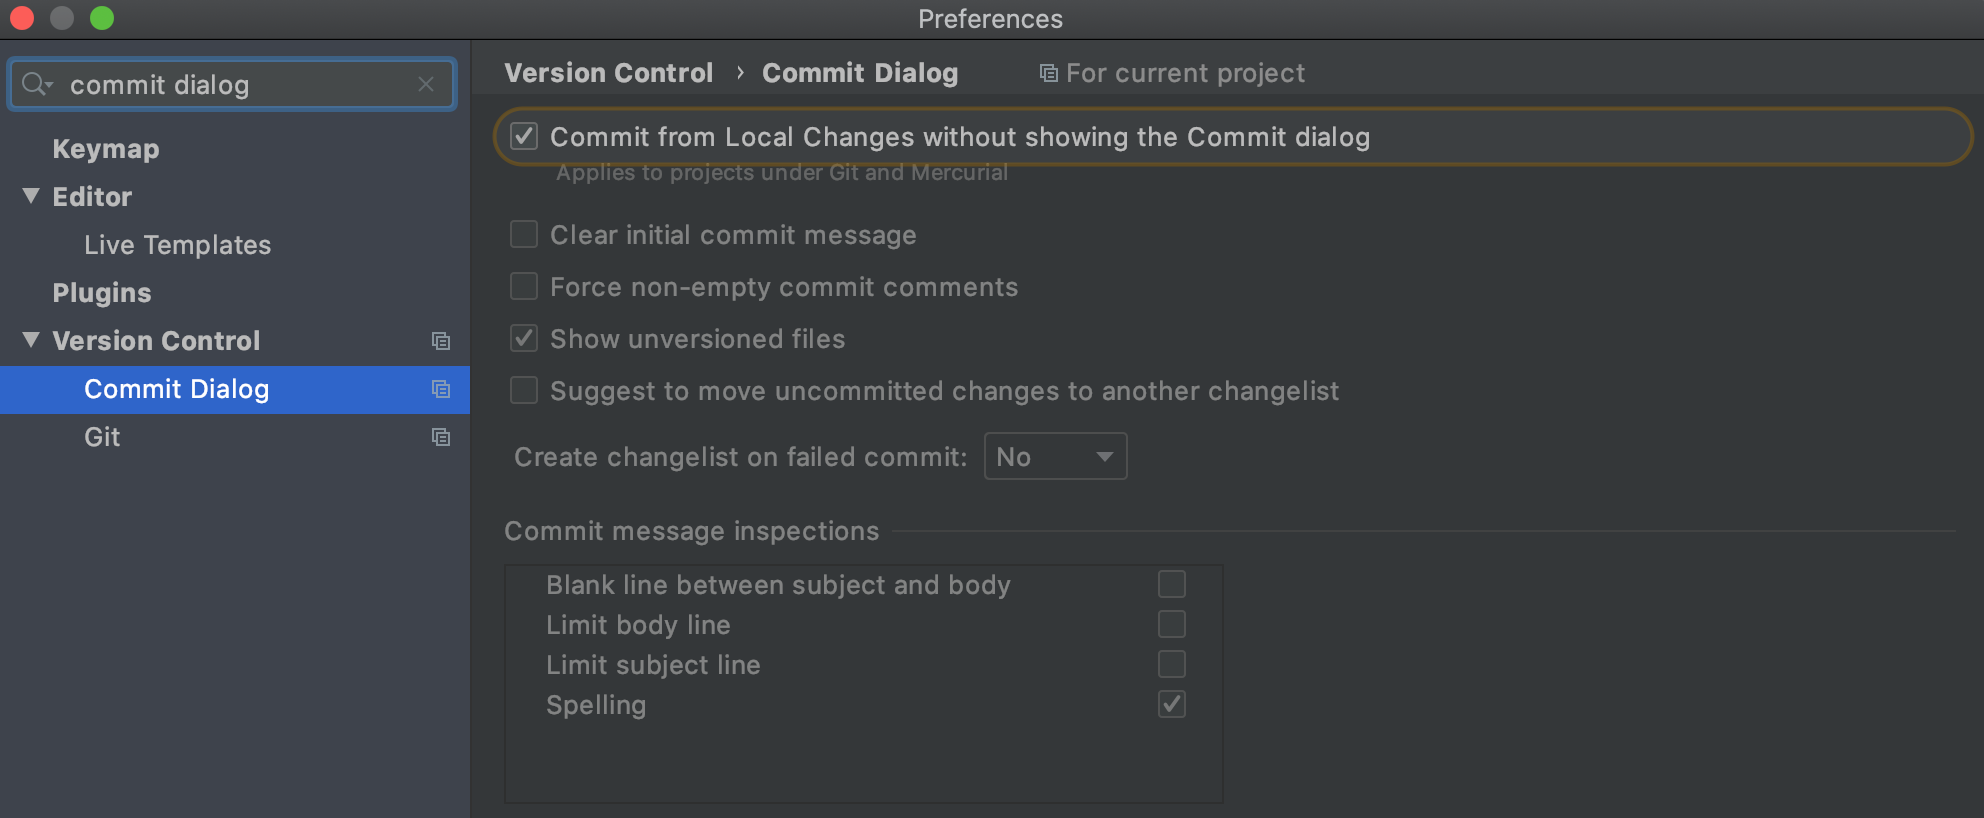 enabling-commit-from-local-changes